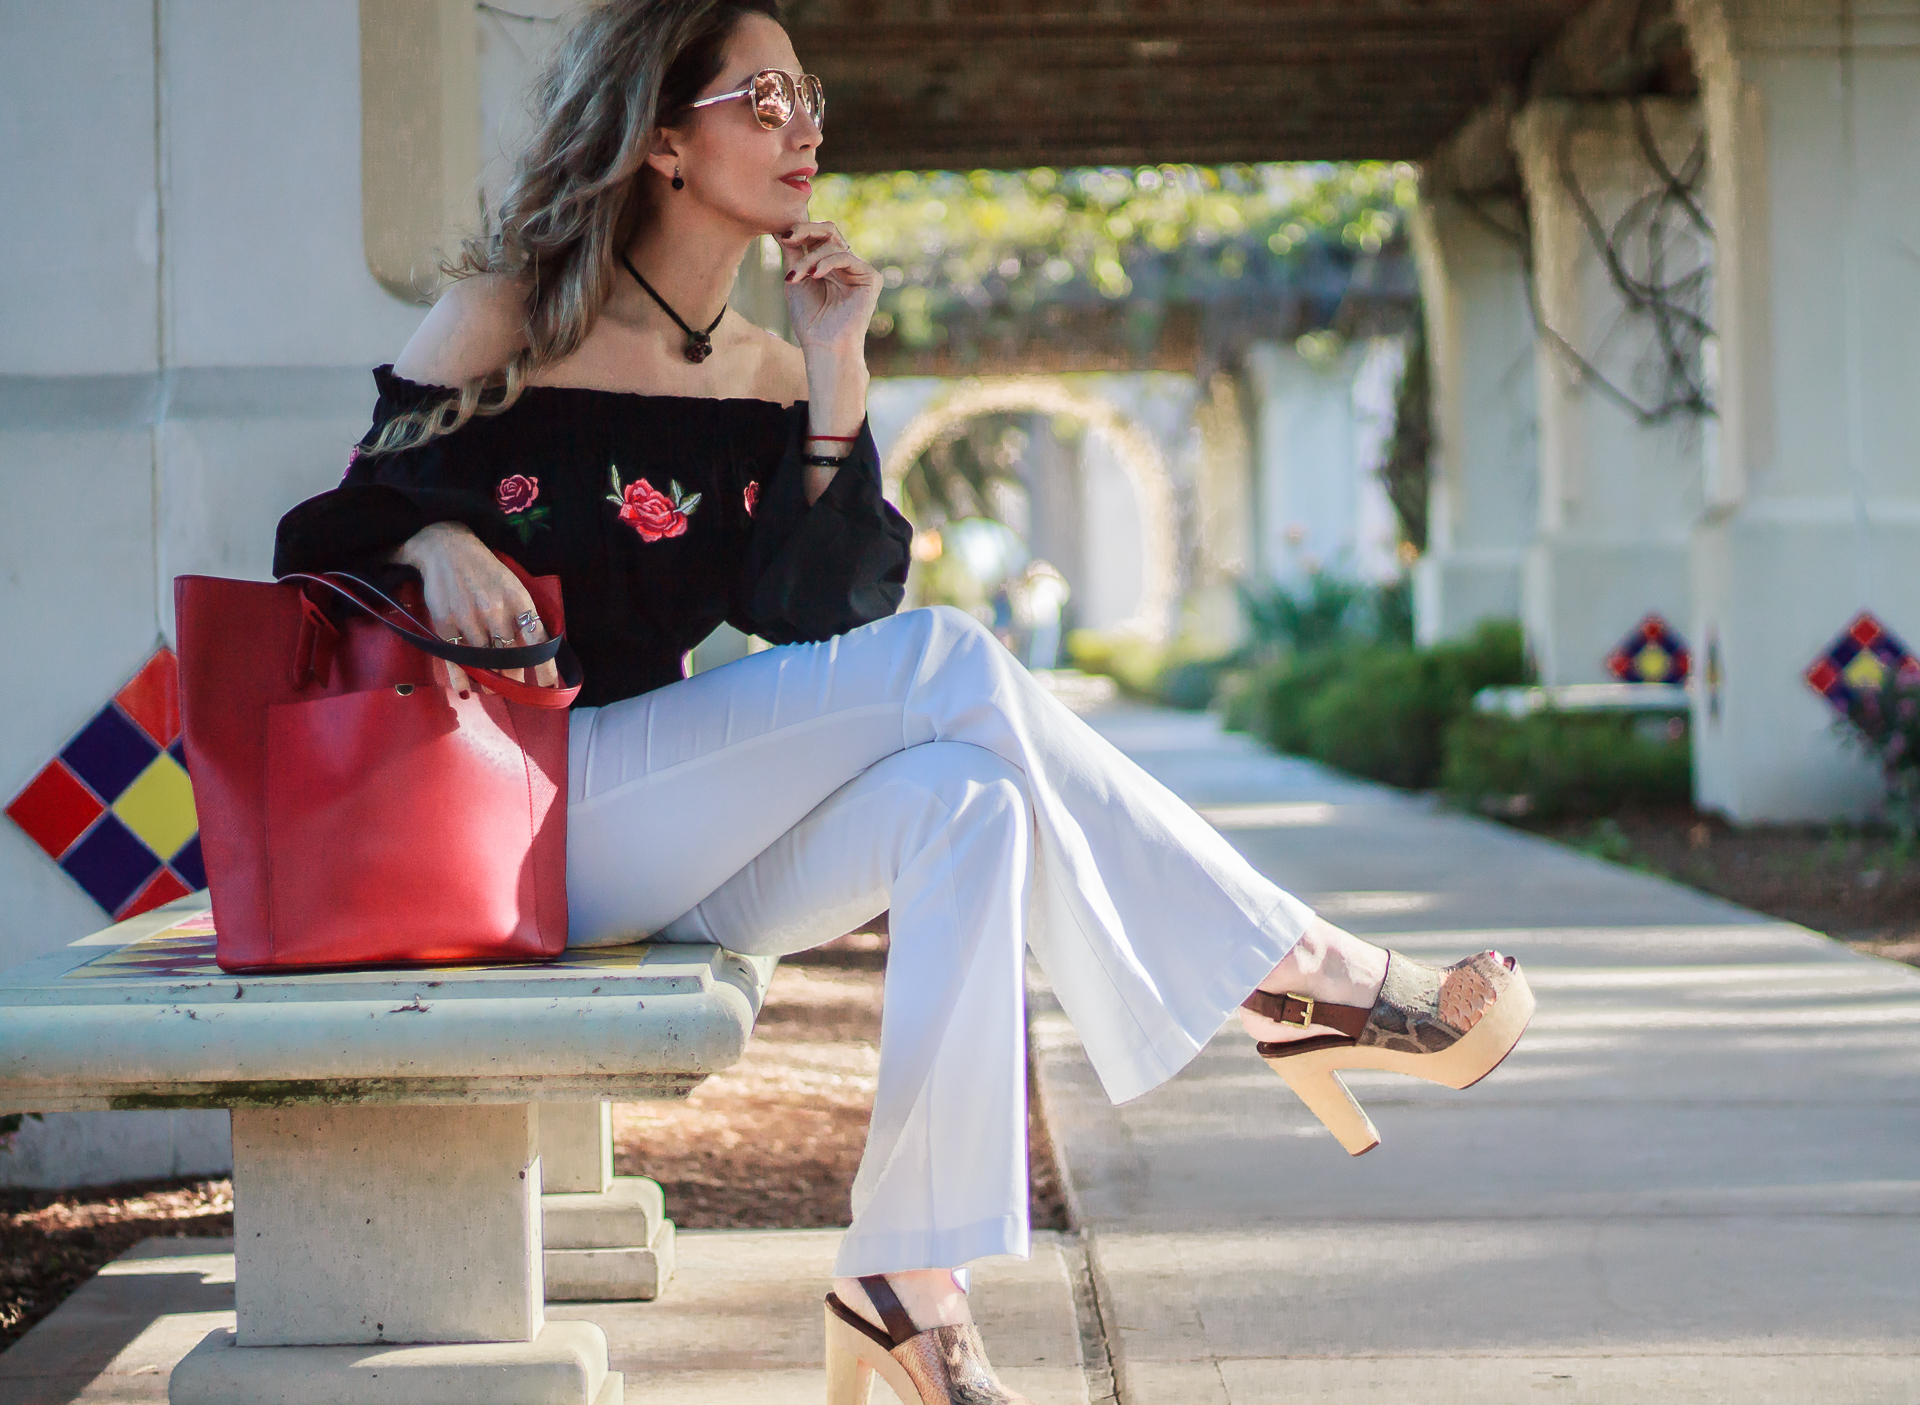 ENHANCE YOUR LOOK WITH FEMININE PIECES // OFF THE SHOULDER TOP